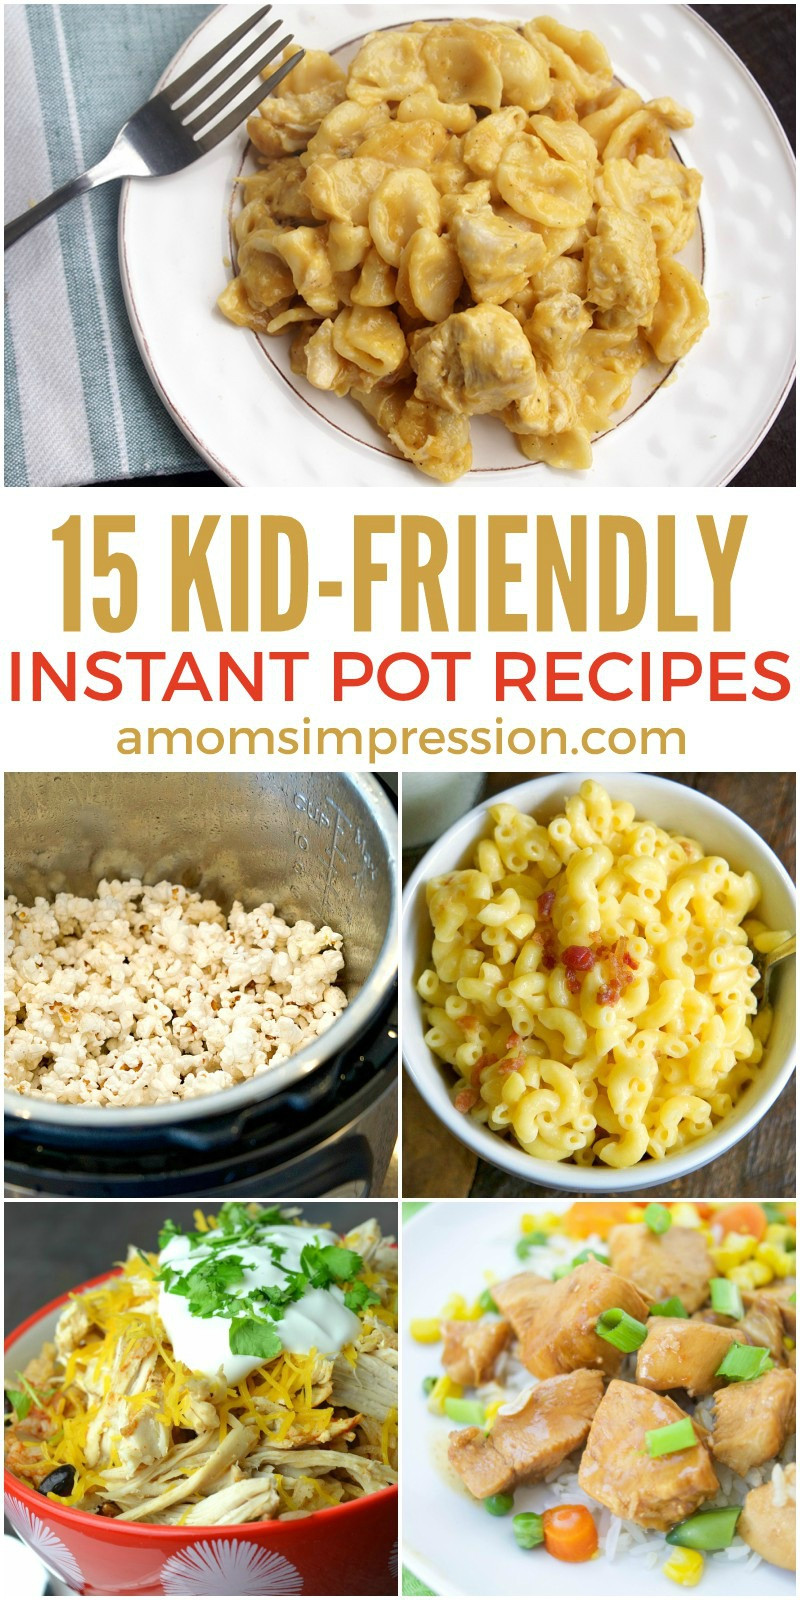 Quick Instant Pot Recipes  15 Quick and Easy Kid Friendly Instant Pot Recipes